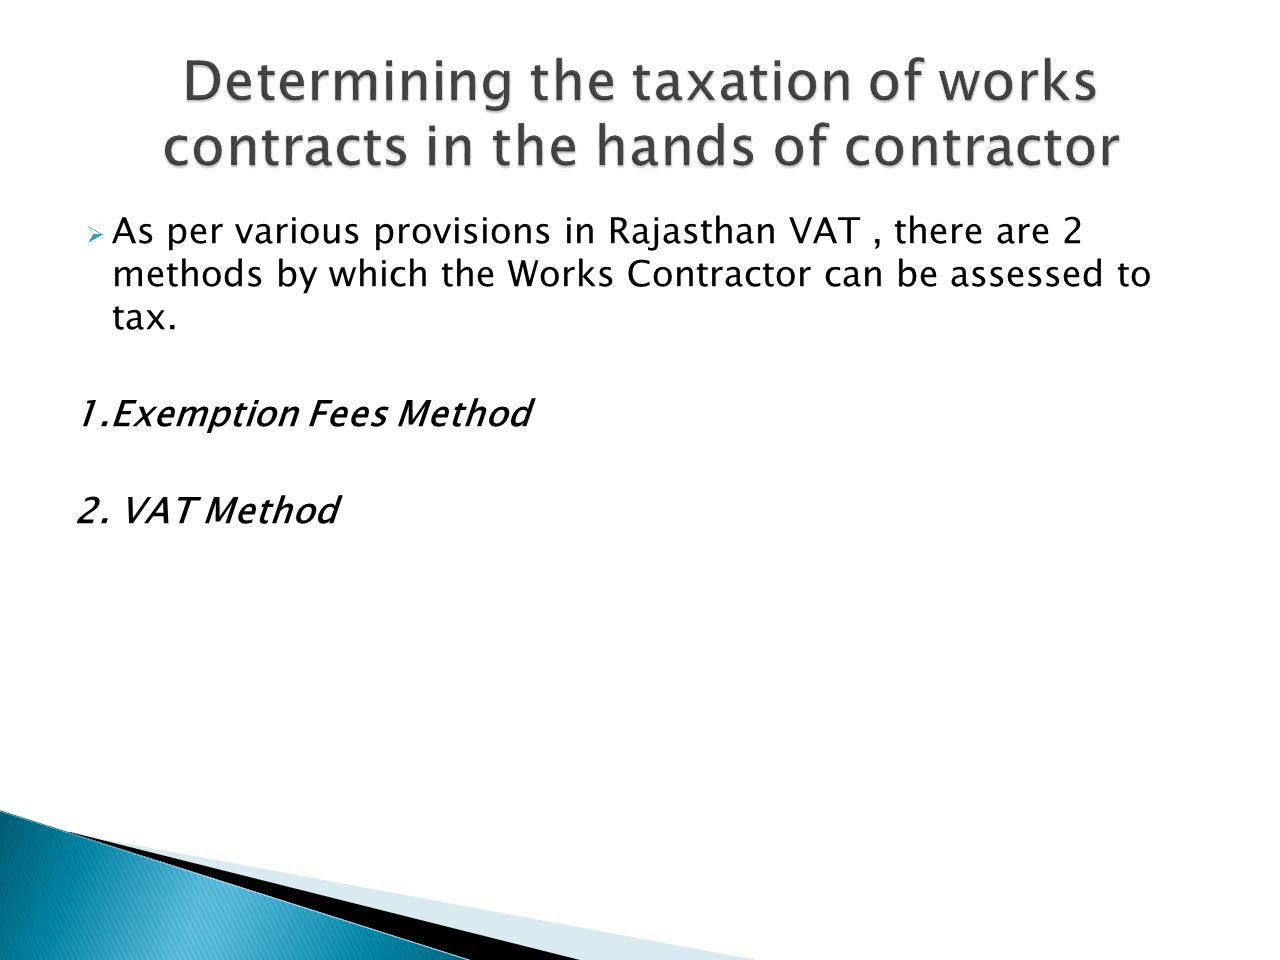 Determining the taxation of works contracts in the hands of contractor